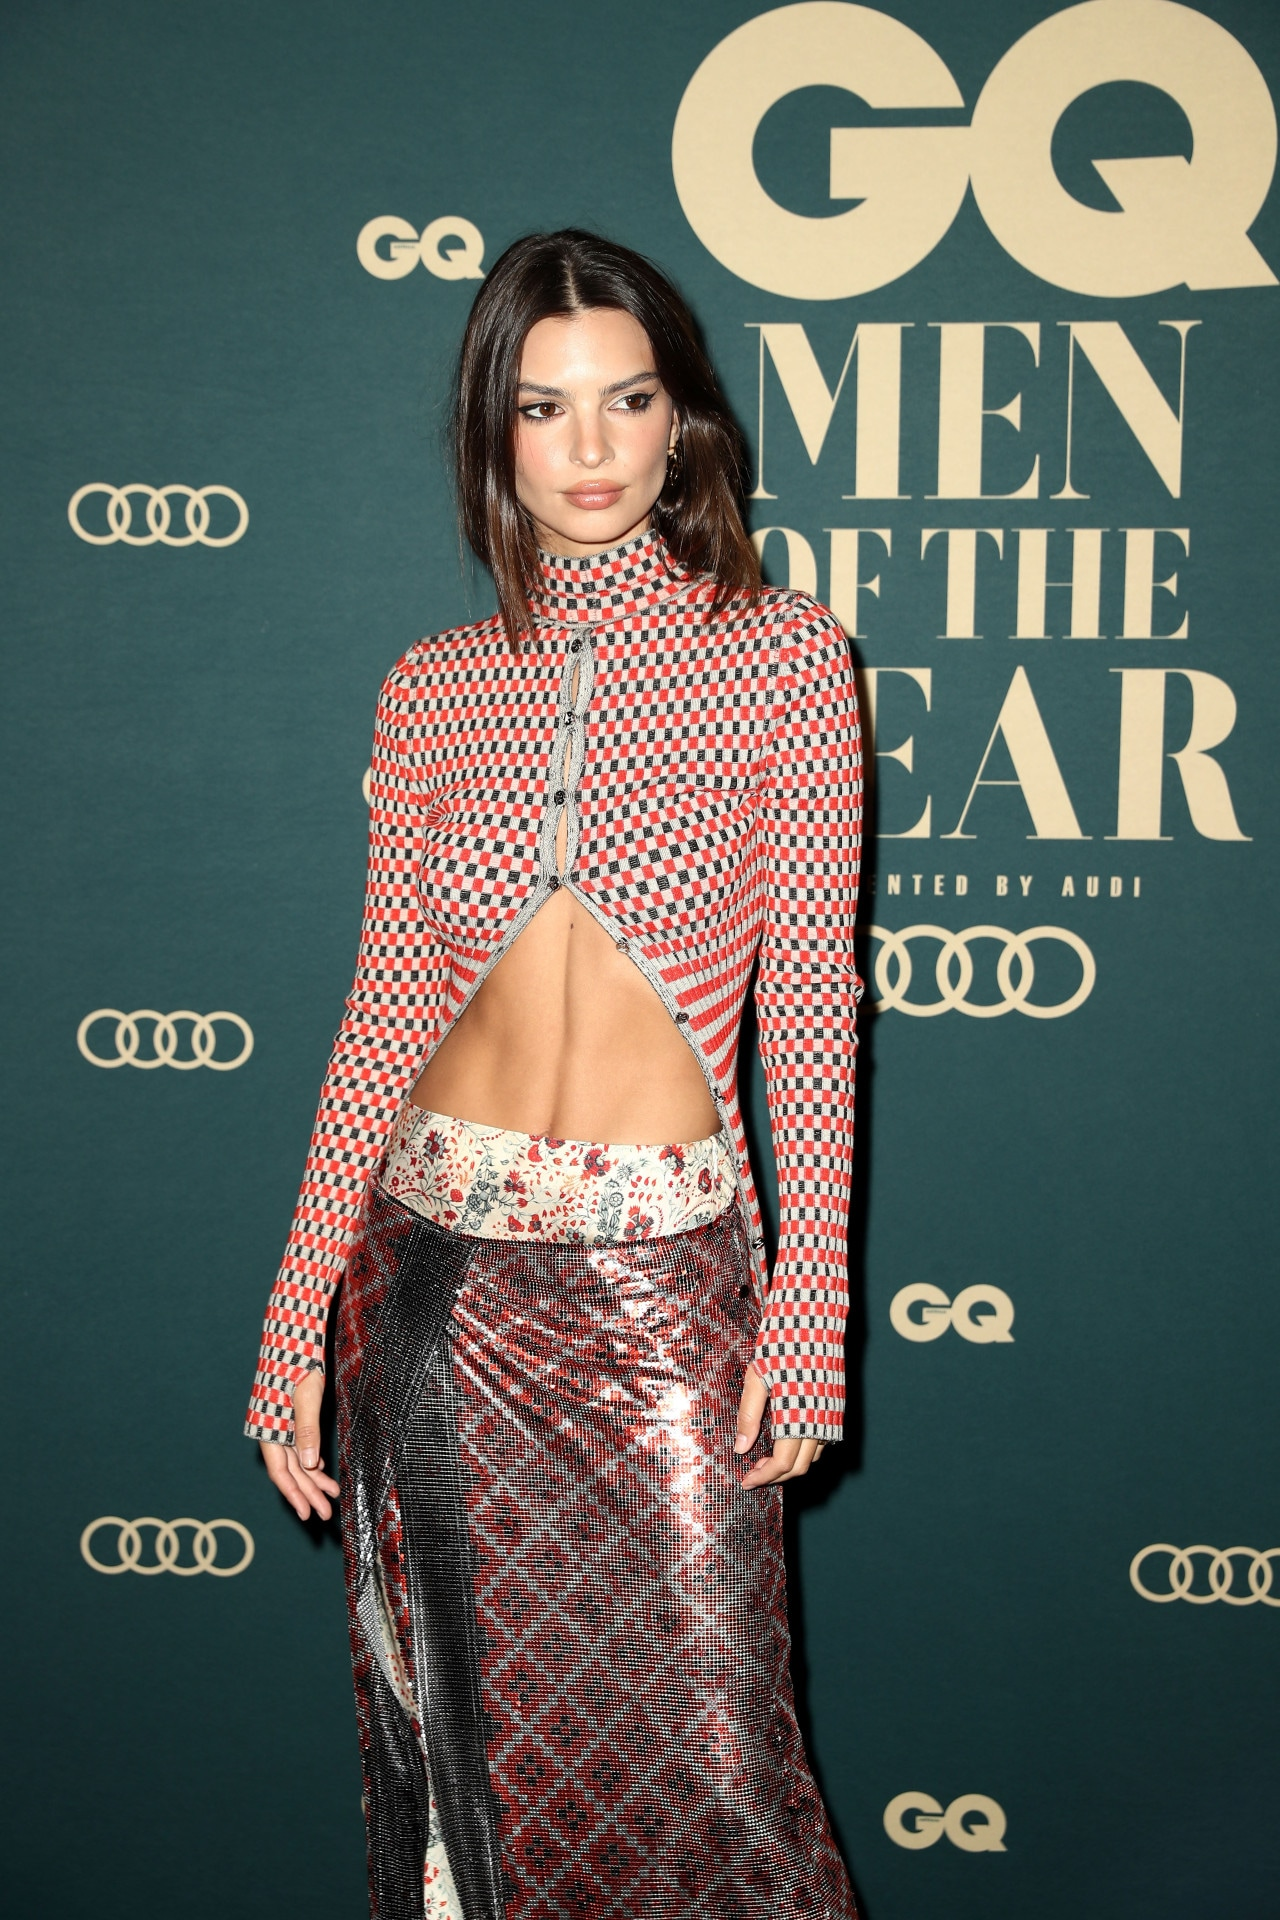 Emily Ratajkowski on wearing a string bikini and still being a modern feminist